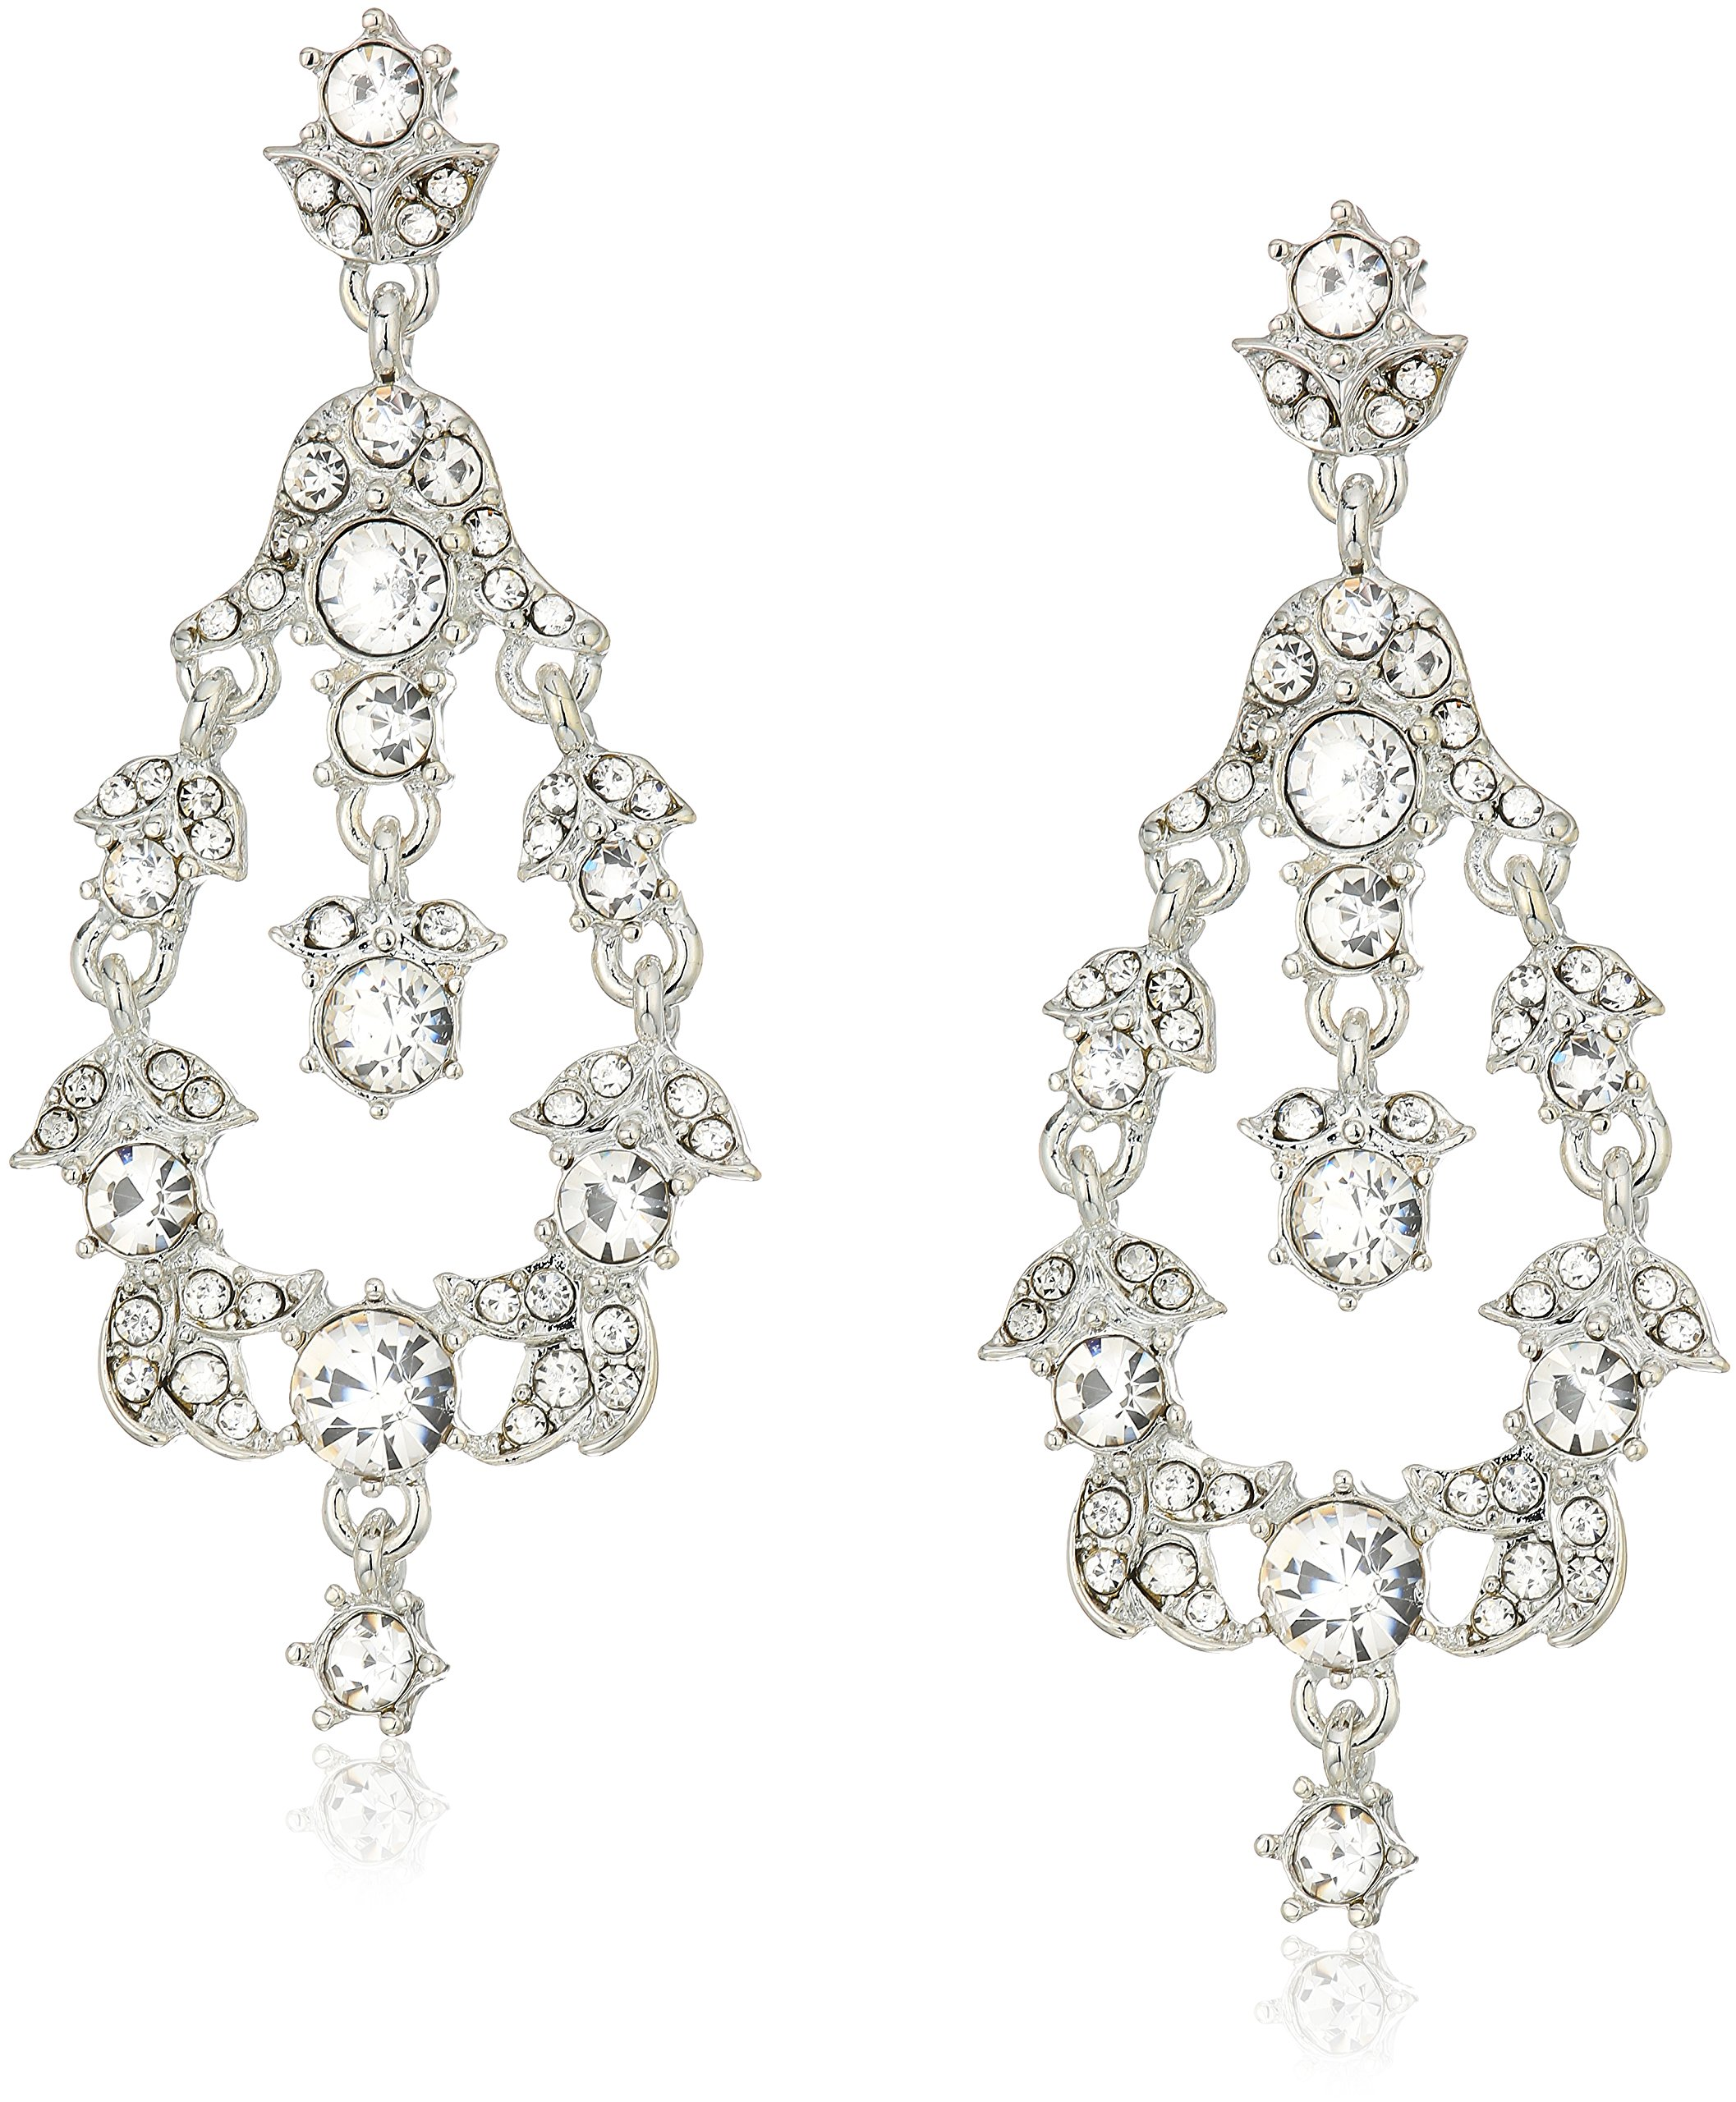 Anne Klein Silver Tone Orbital Drop Earrings